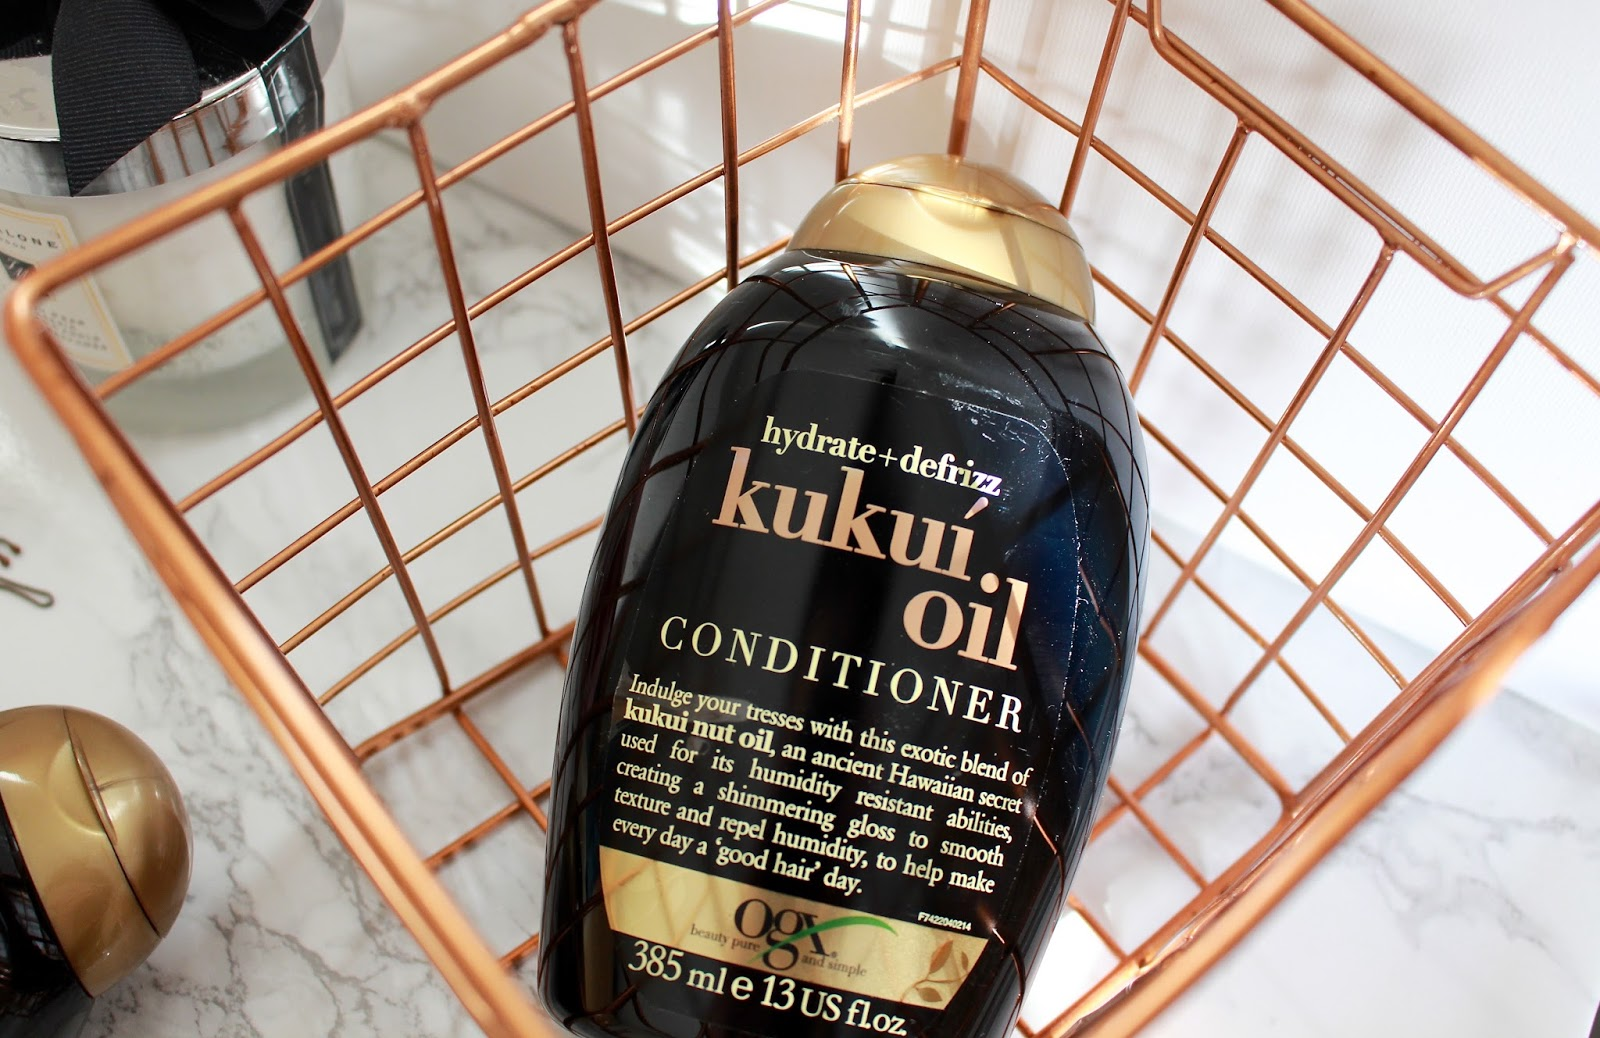 OGX Kukui Oil Review